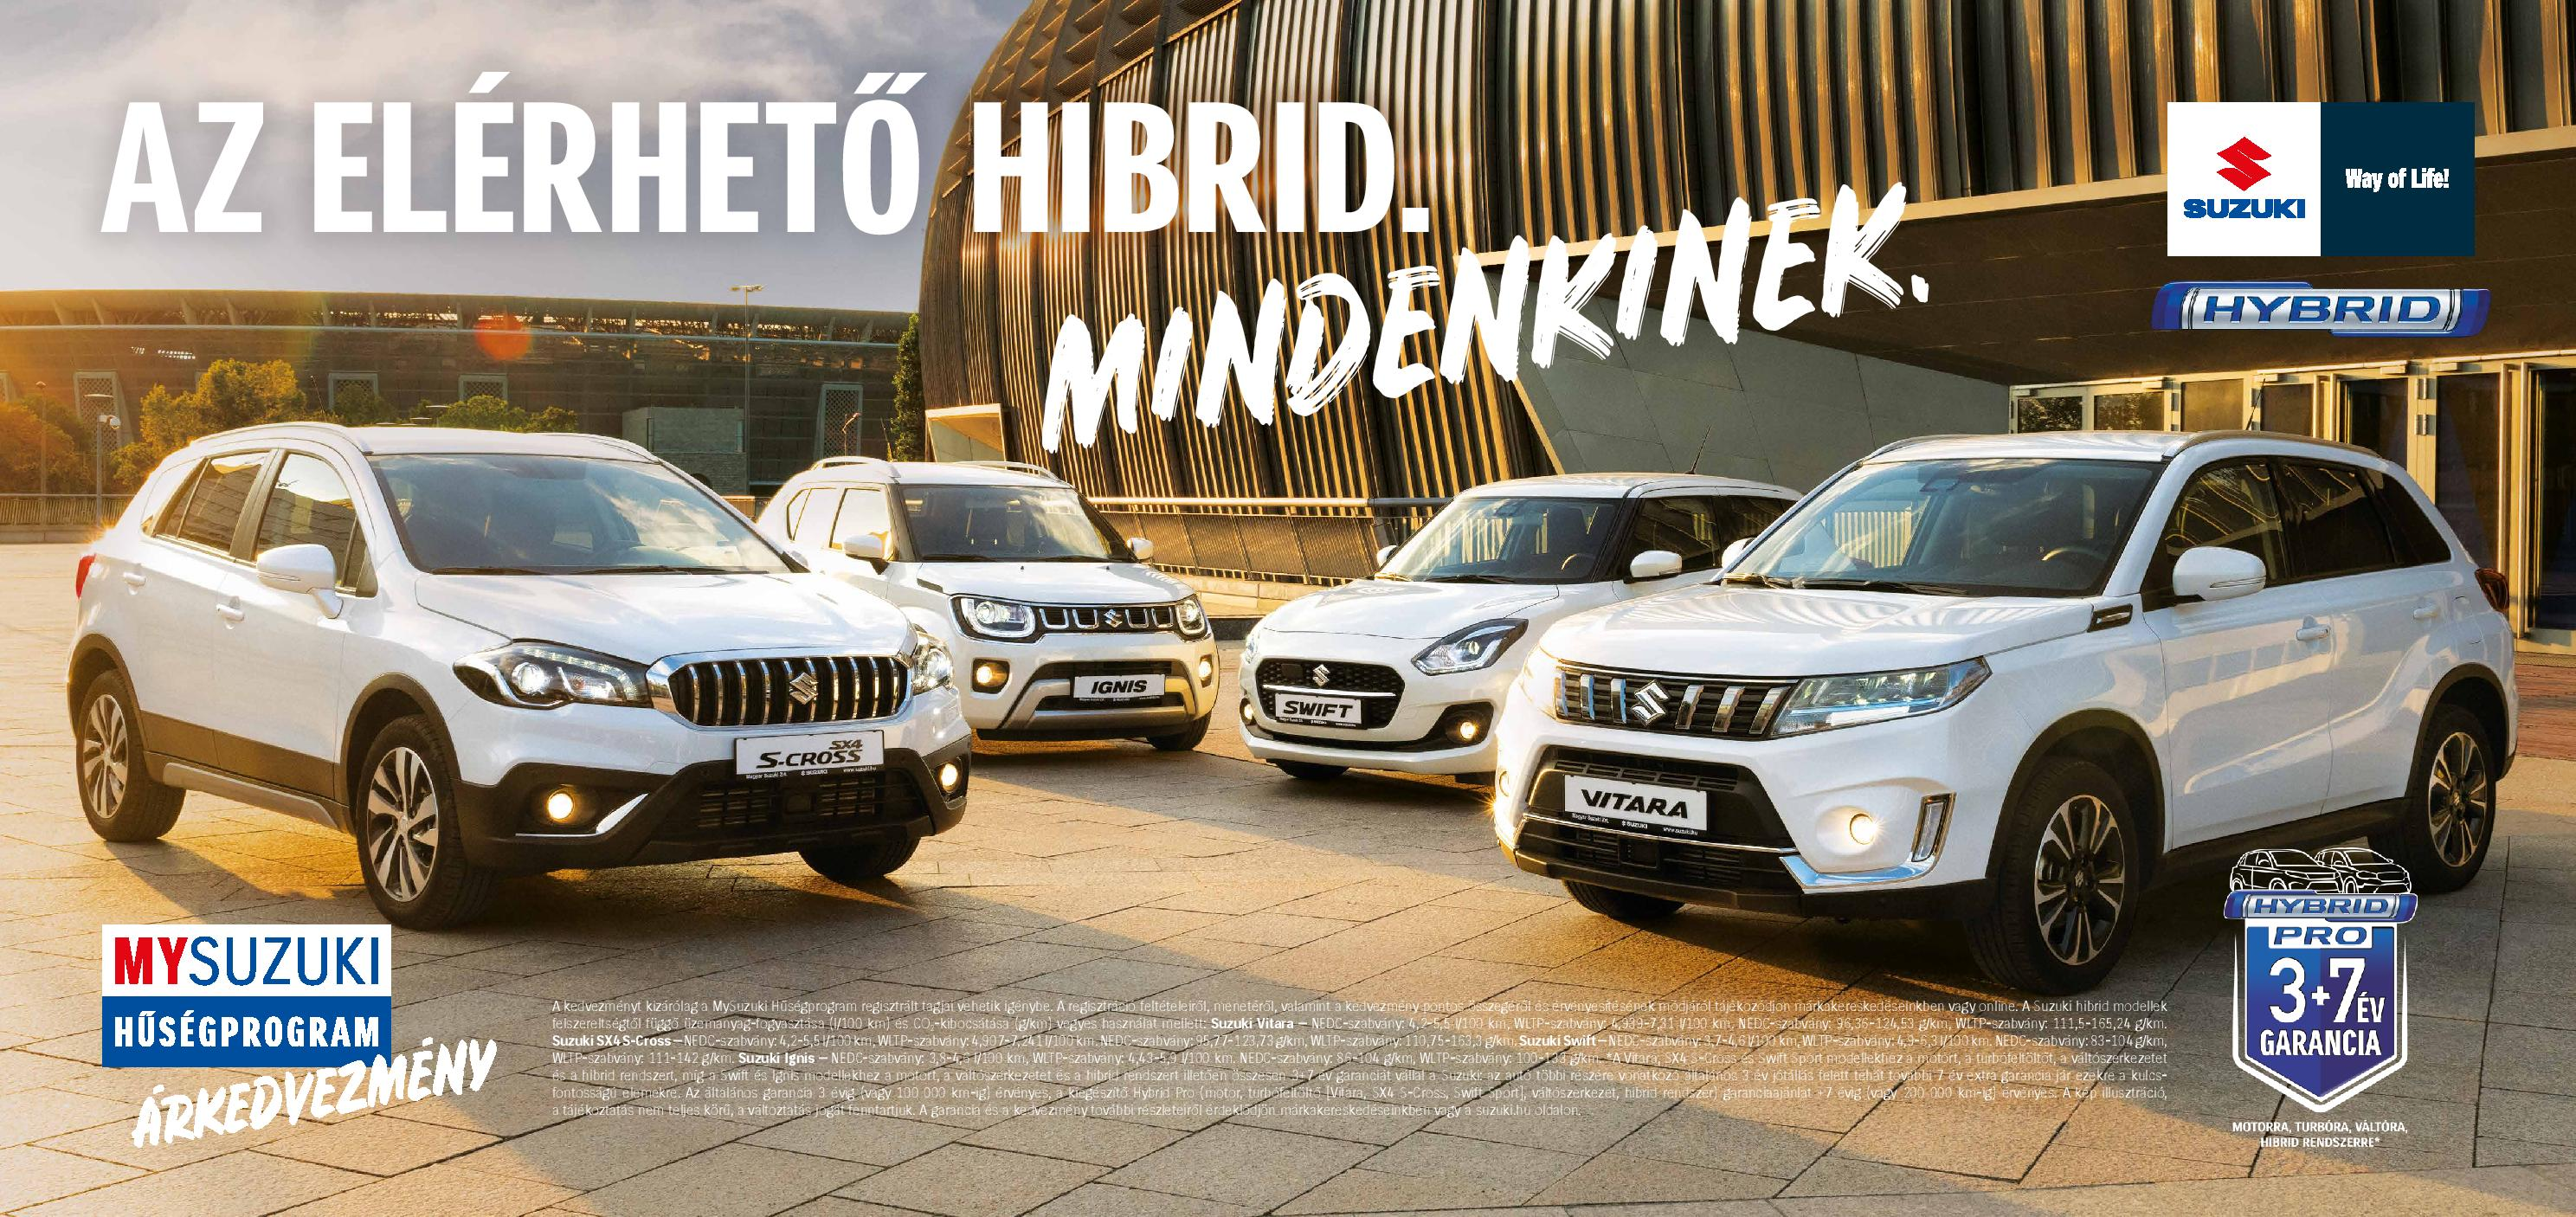 suzuki_hybrid_range_bb_preview-page-001